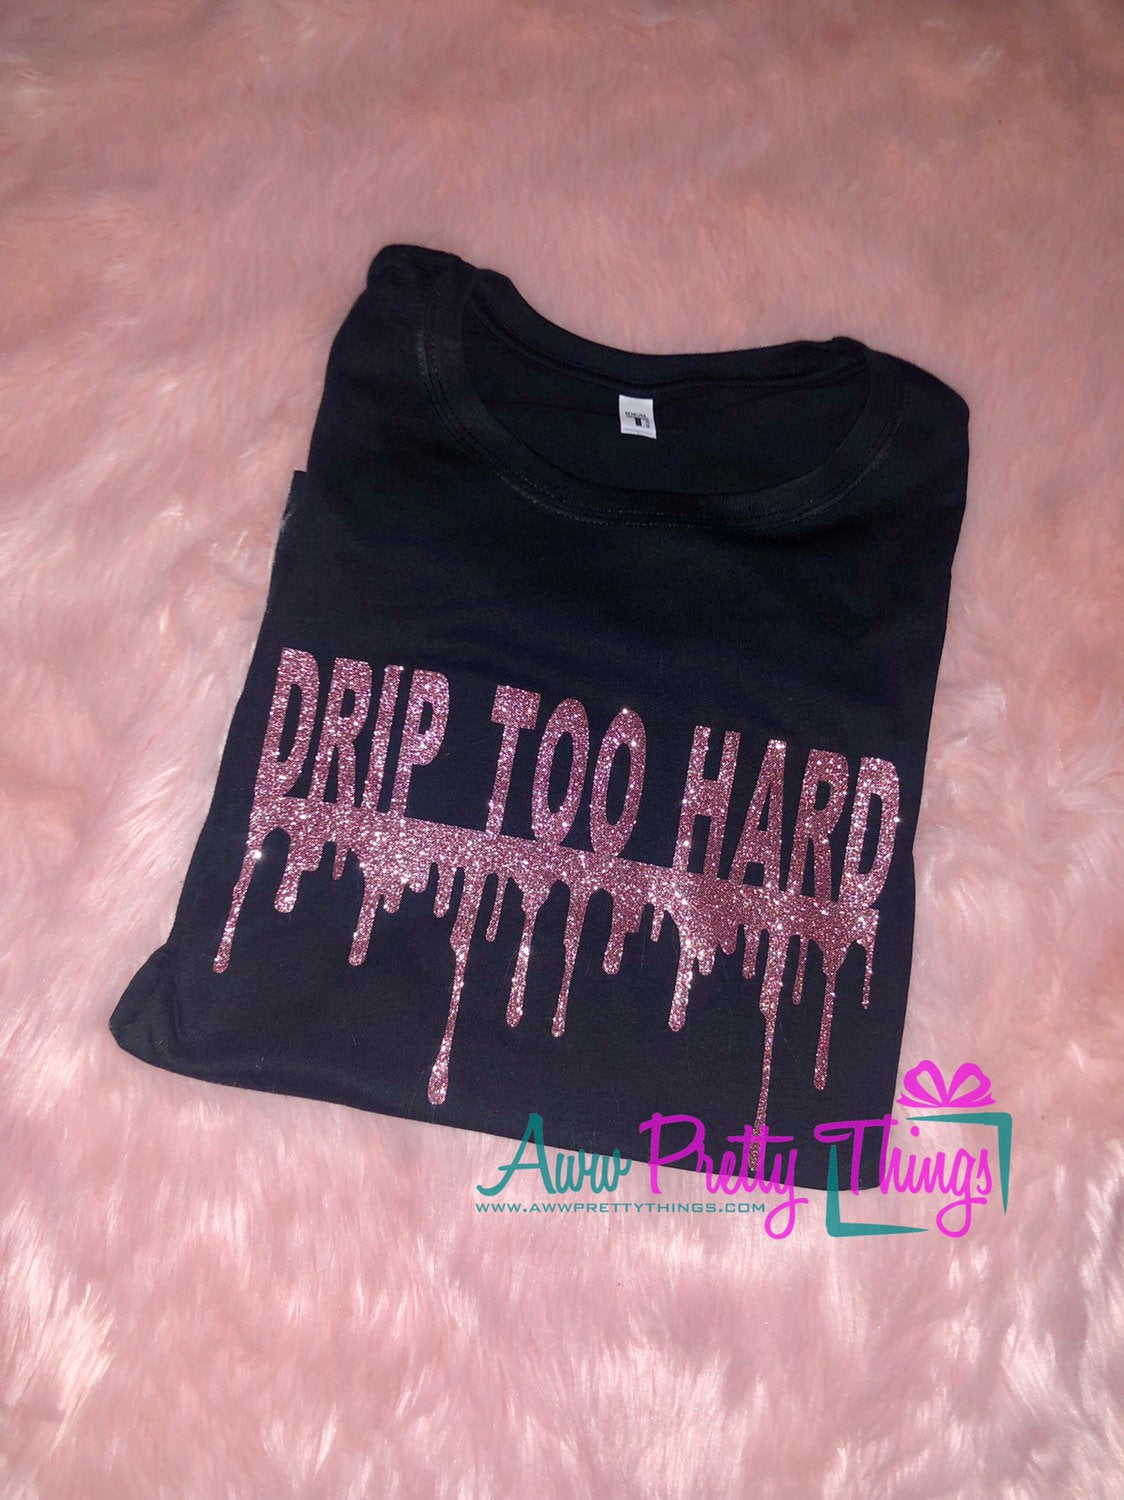 Drip Too Hard T-Shirt Drip T-Shirt Drip For Sale Melanin Custom T-Shirt Glitter Tee Rose Gold Glitter Drippin In Sauce